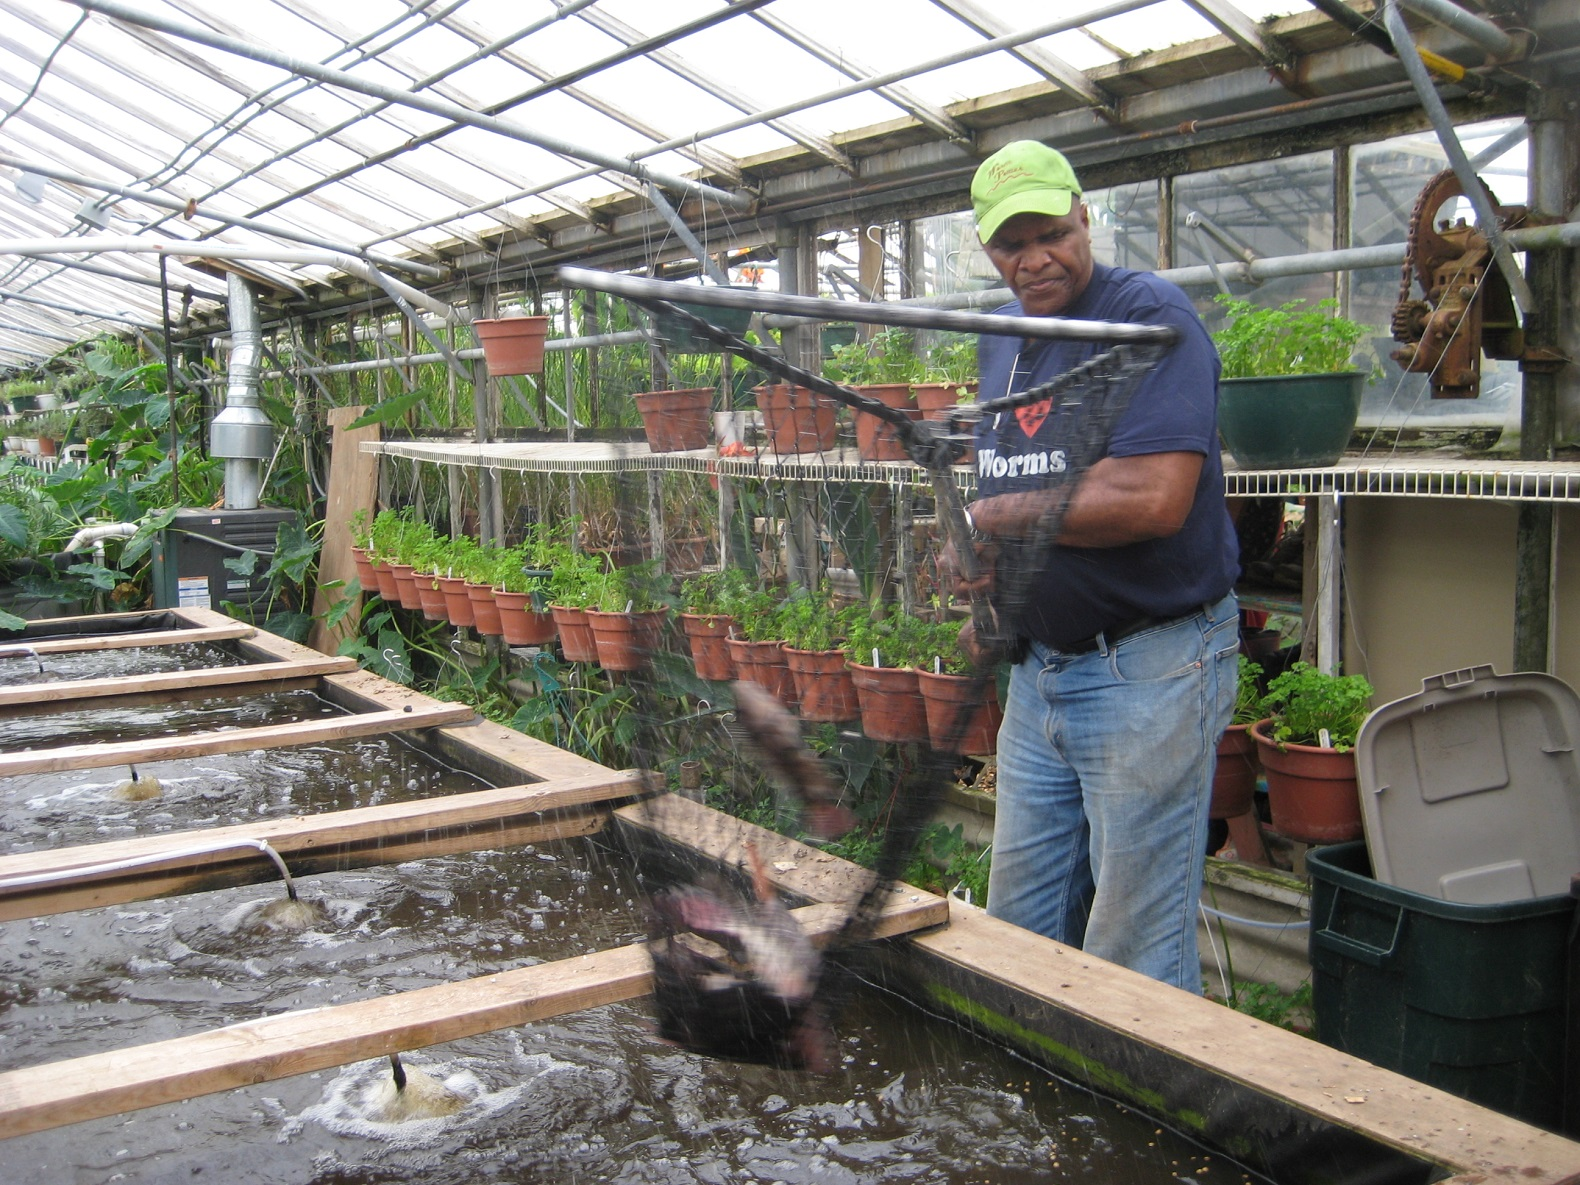 Growing Power grows fish, veggies, and community with aquaponic farm